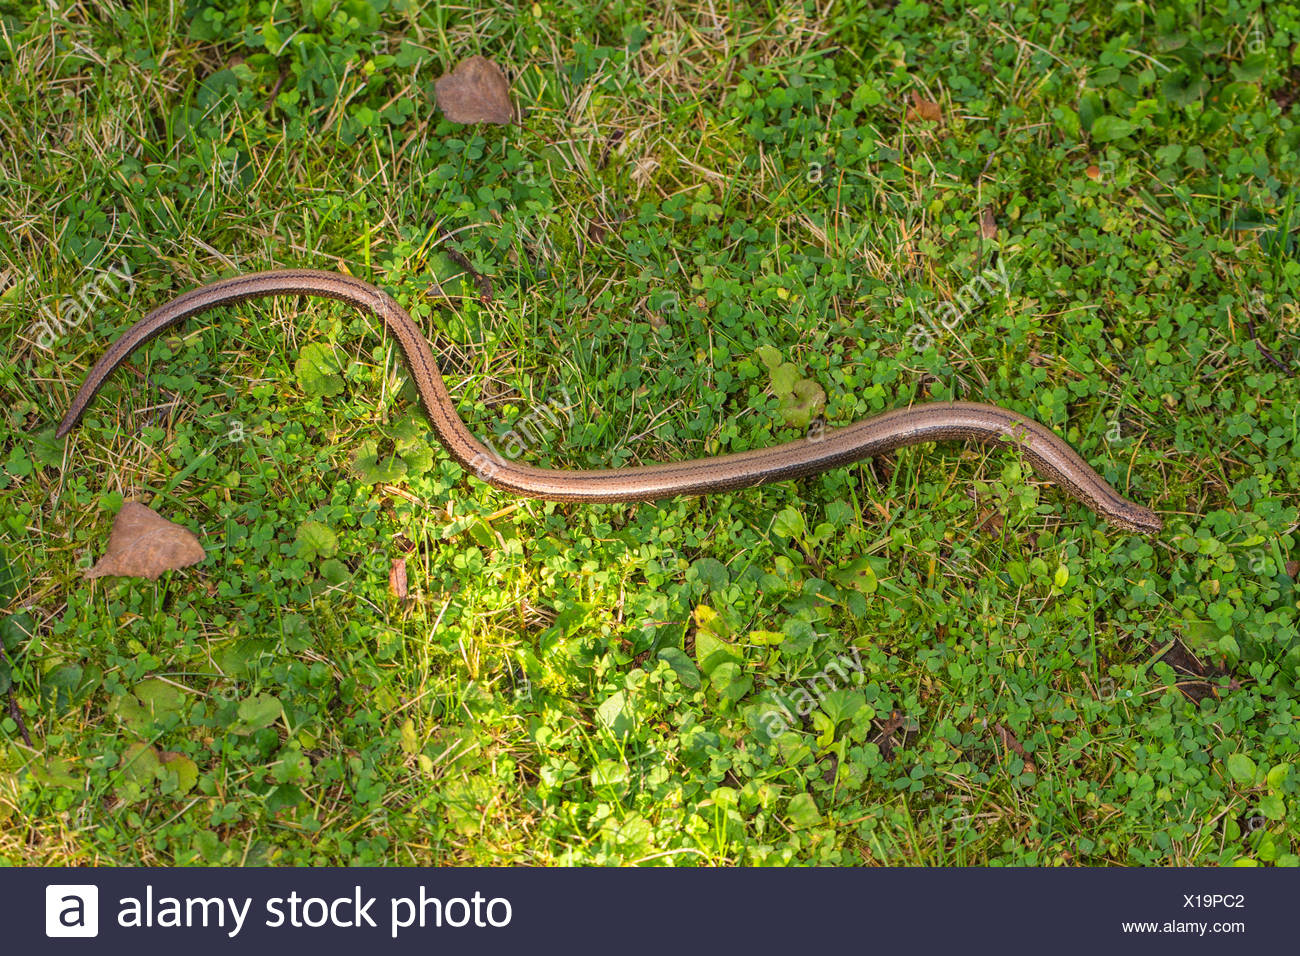 European slow worm, blindworm, slow worm (Anguis fragilis), crawling in a meadow, Germany, Bavaria, Isental Stock Photo